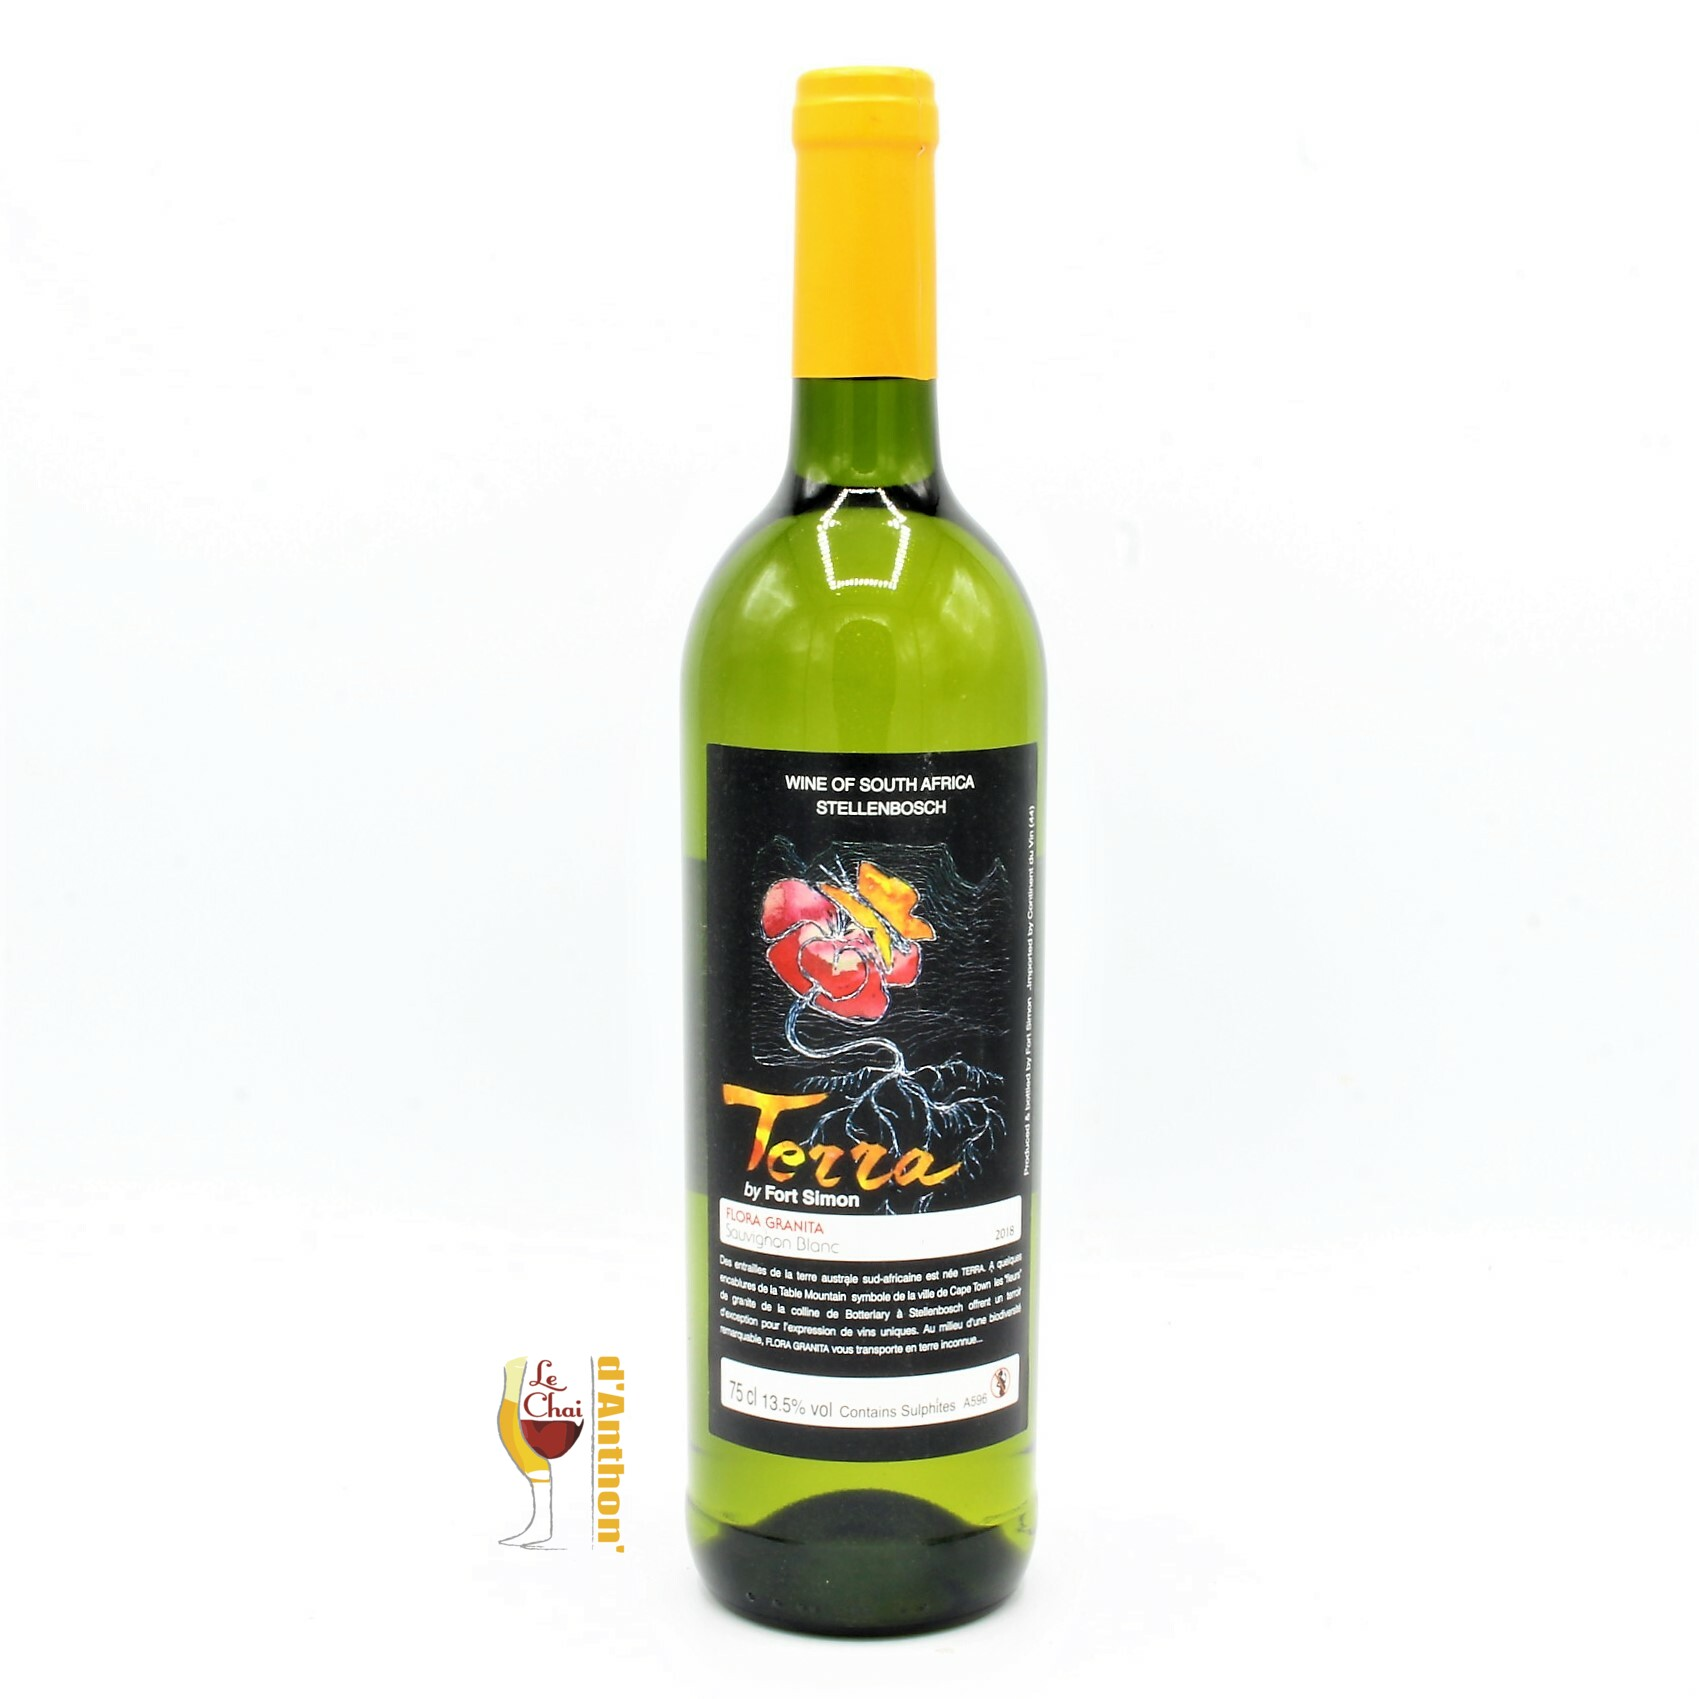 Le Chai D&807.jpg039;Anthon Vin Blanc South Africa Terra 75cl 807